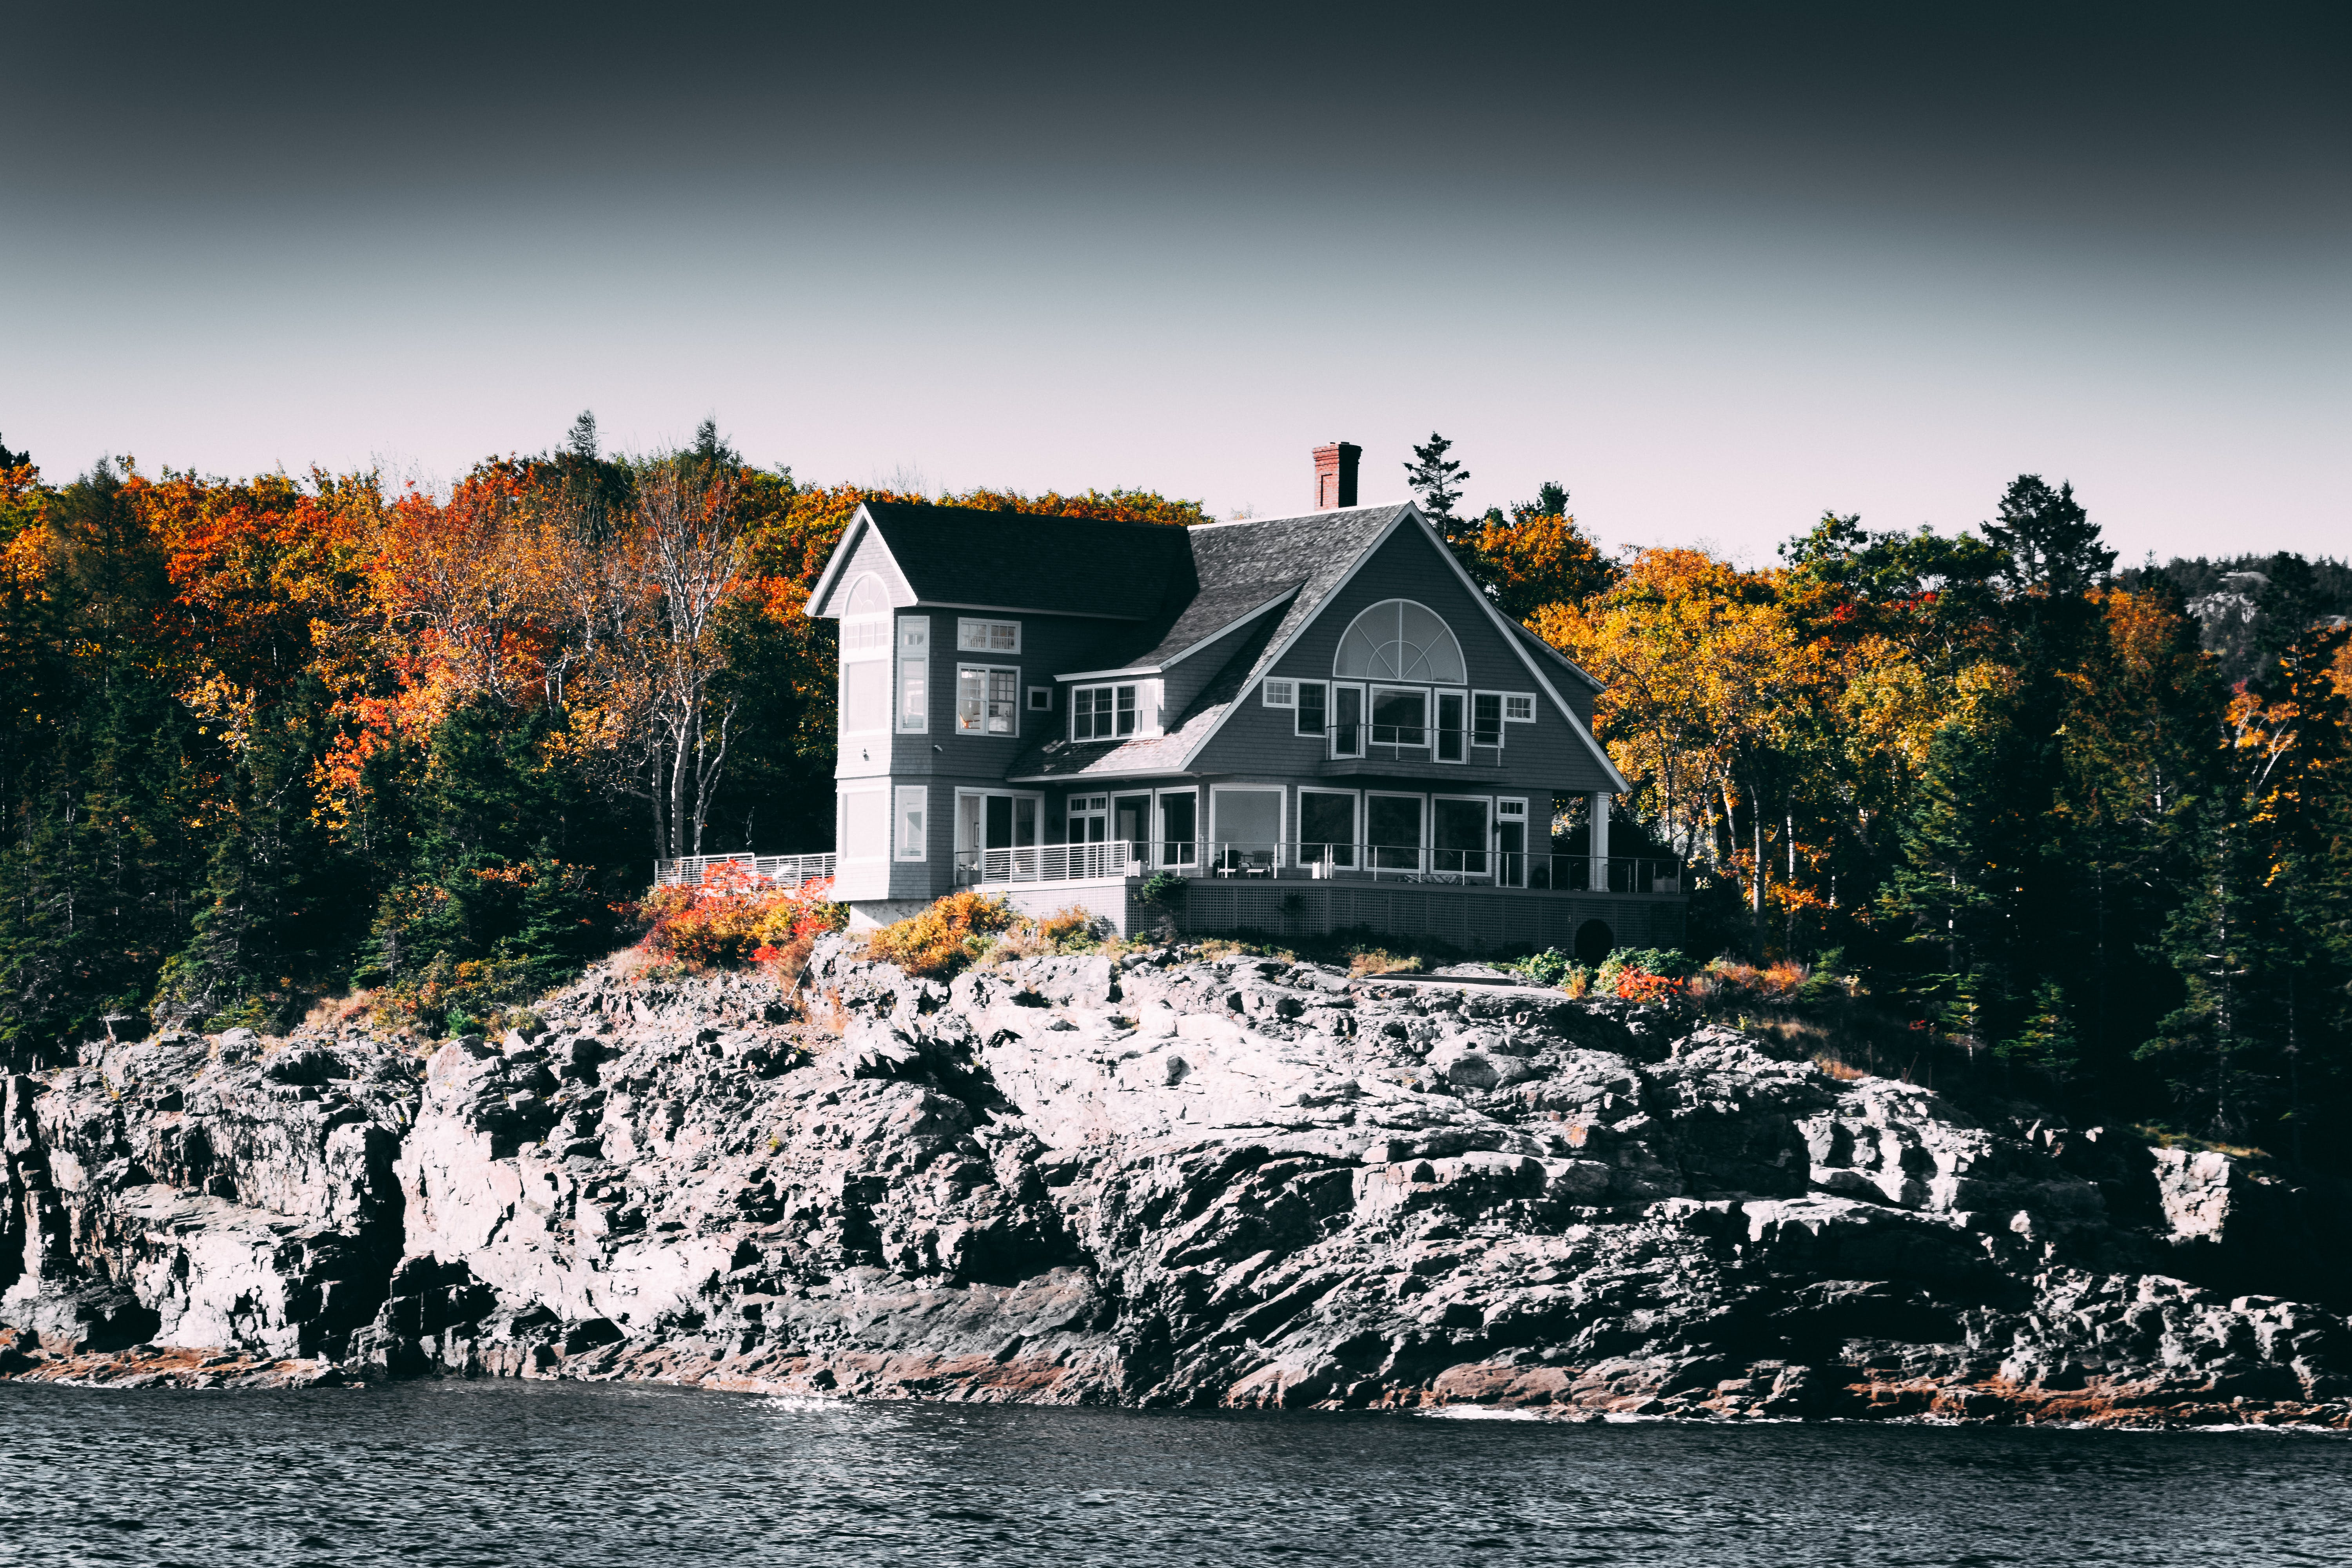 Gray and White House Beside Body of Water